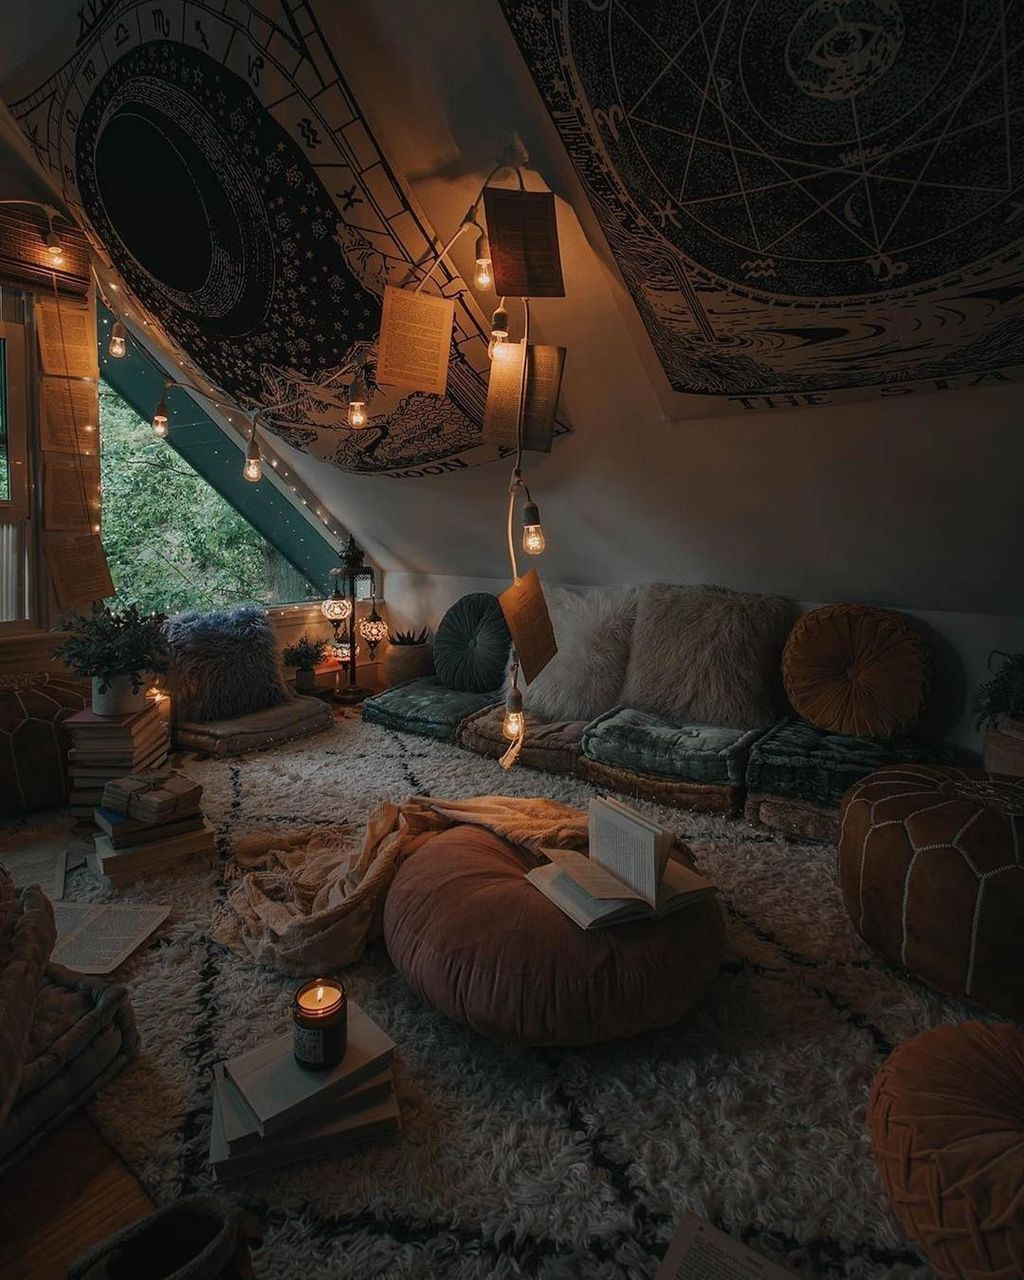 36 Lovely Attic Bedroom Ideas With Bohemian Style In 2020 Dream Rooms Cozy Room Aesthetic Rooms